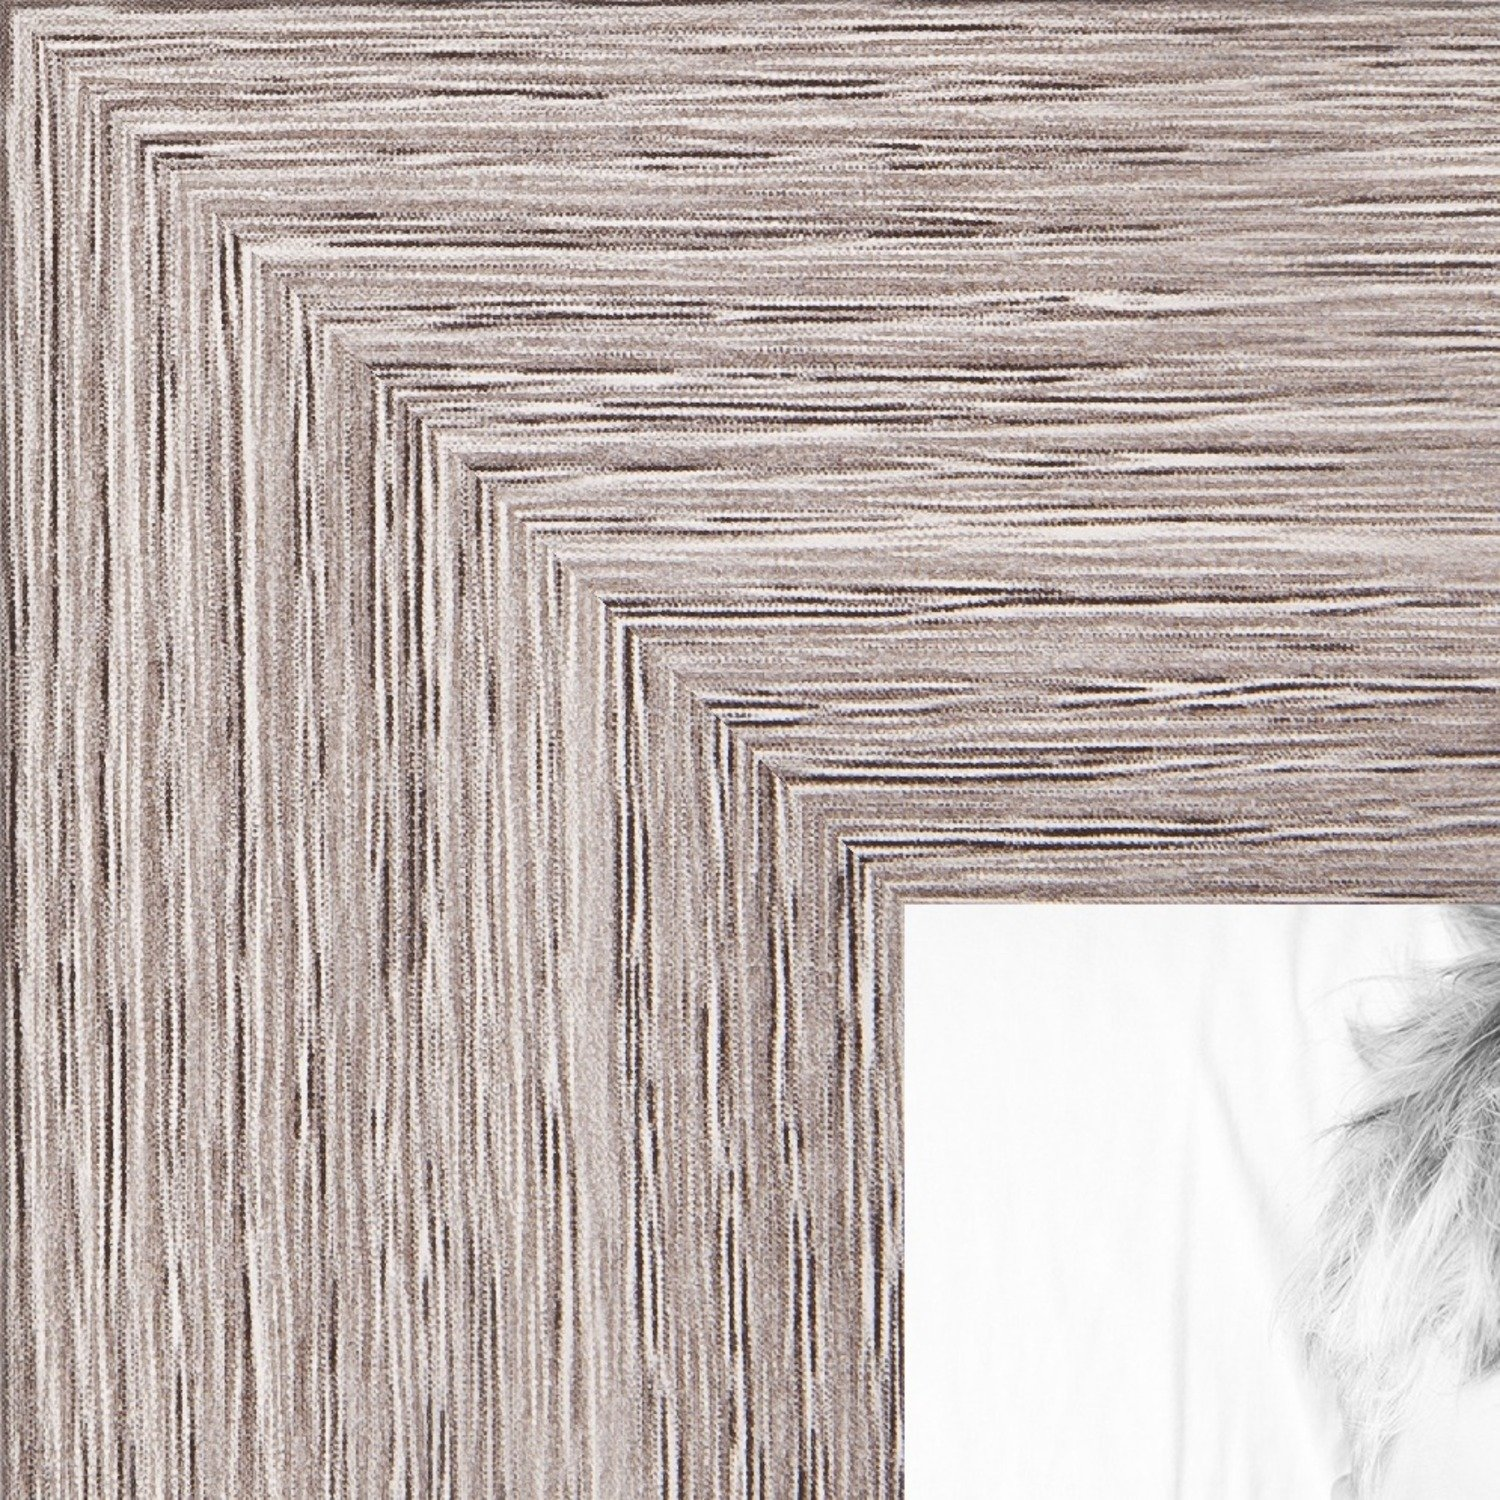 ArtToFrames 12x36 inch  Gray Oak - Barnwood Picture Frame, 2WOM76808-973-12x36 by ArtToFrames (Image #1)